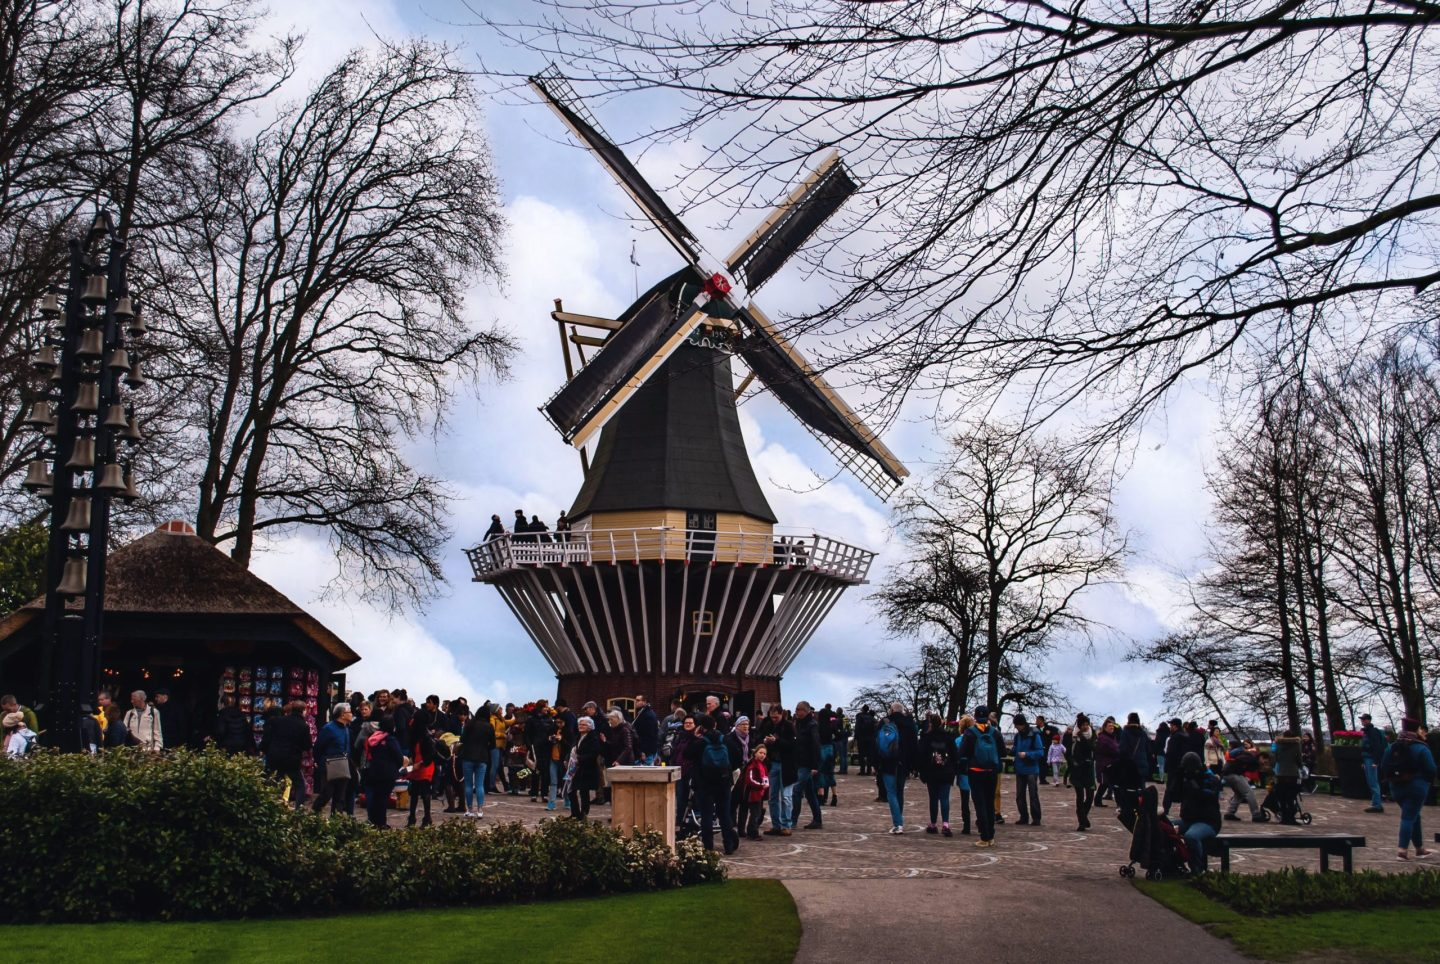 The windmill at Keukenhof